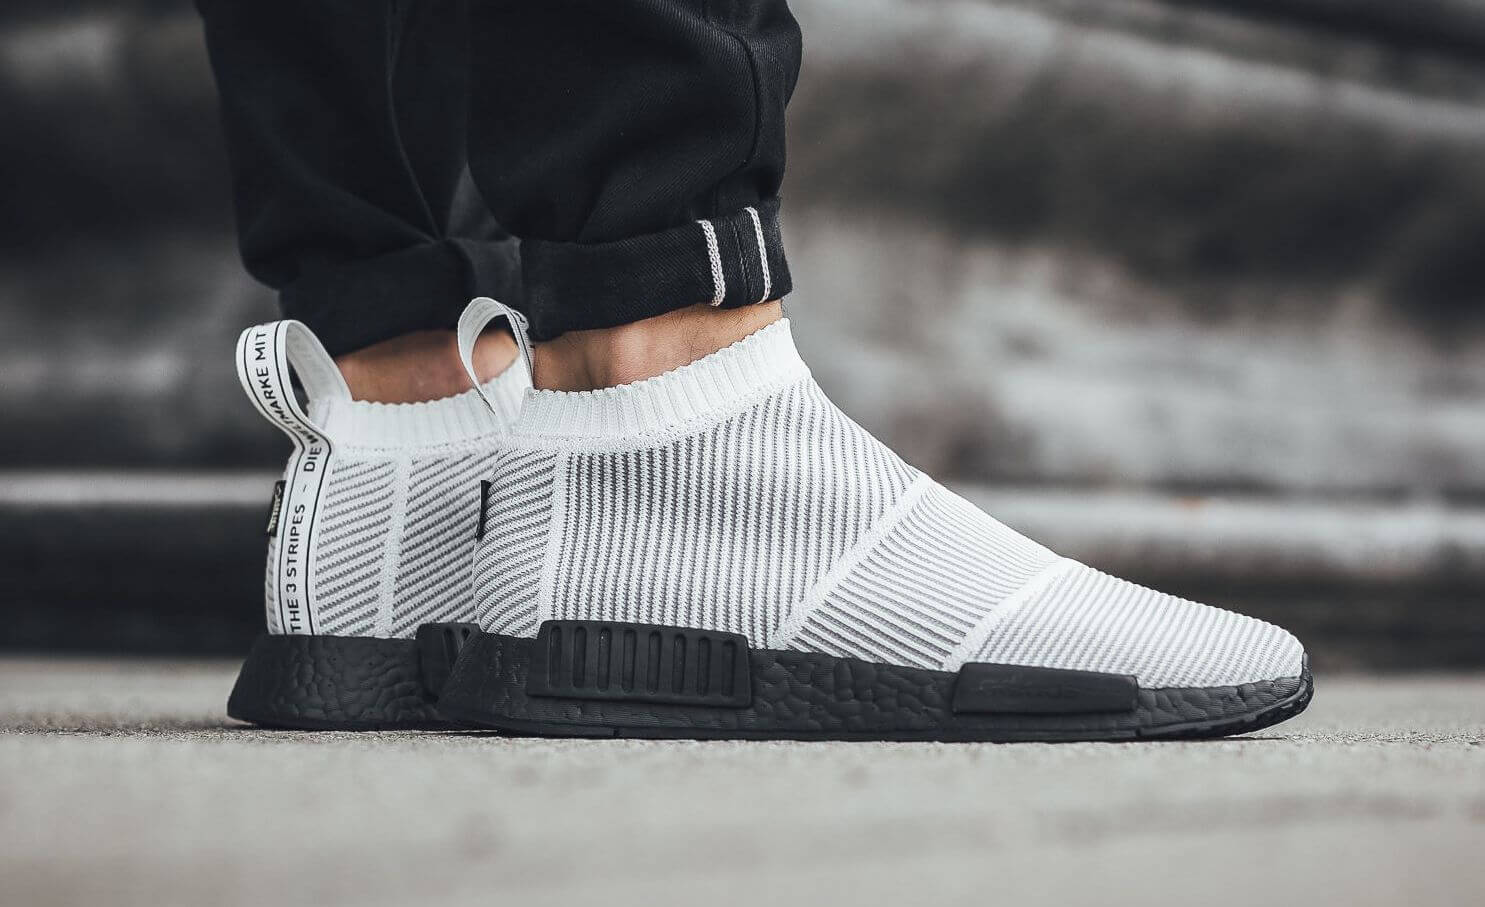 d0d5f0a1b5d22c The White and Black Colorway of Adidas NMD CS1 Gore-Tex Has Finally ...